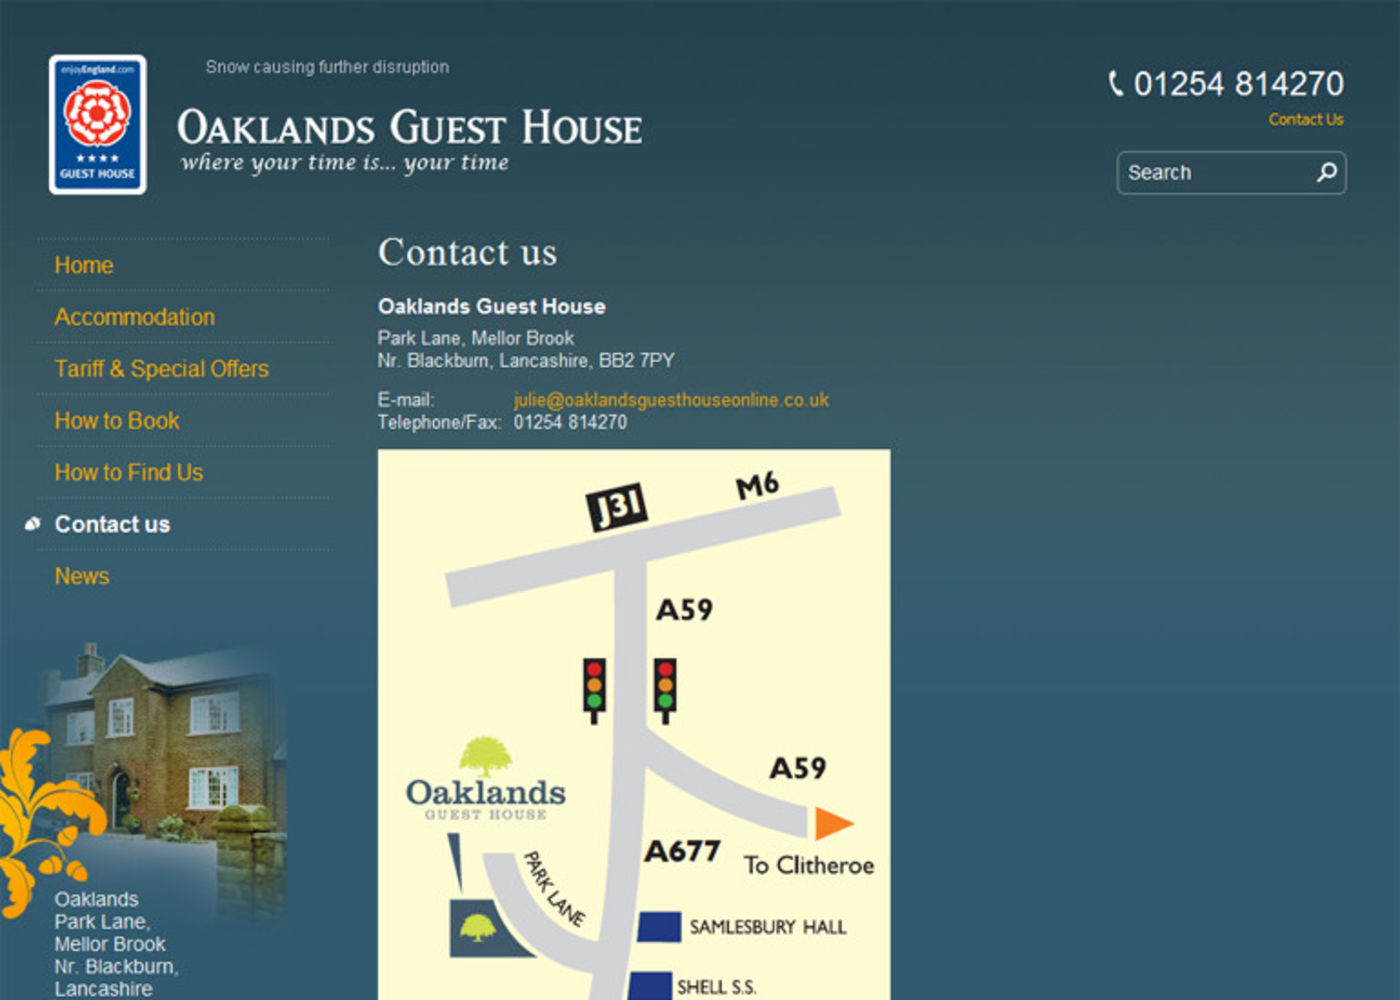 Oaklands Guest House Contact us